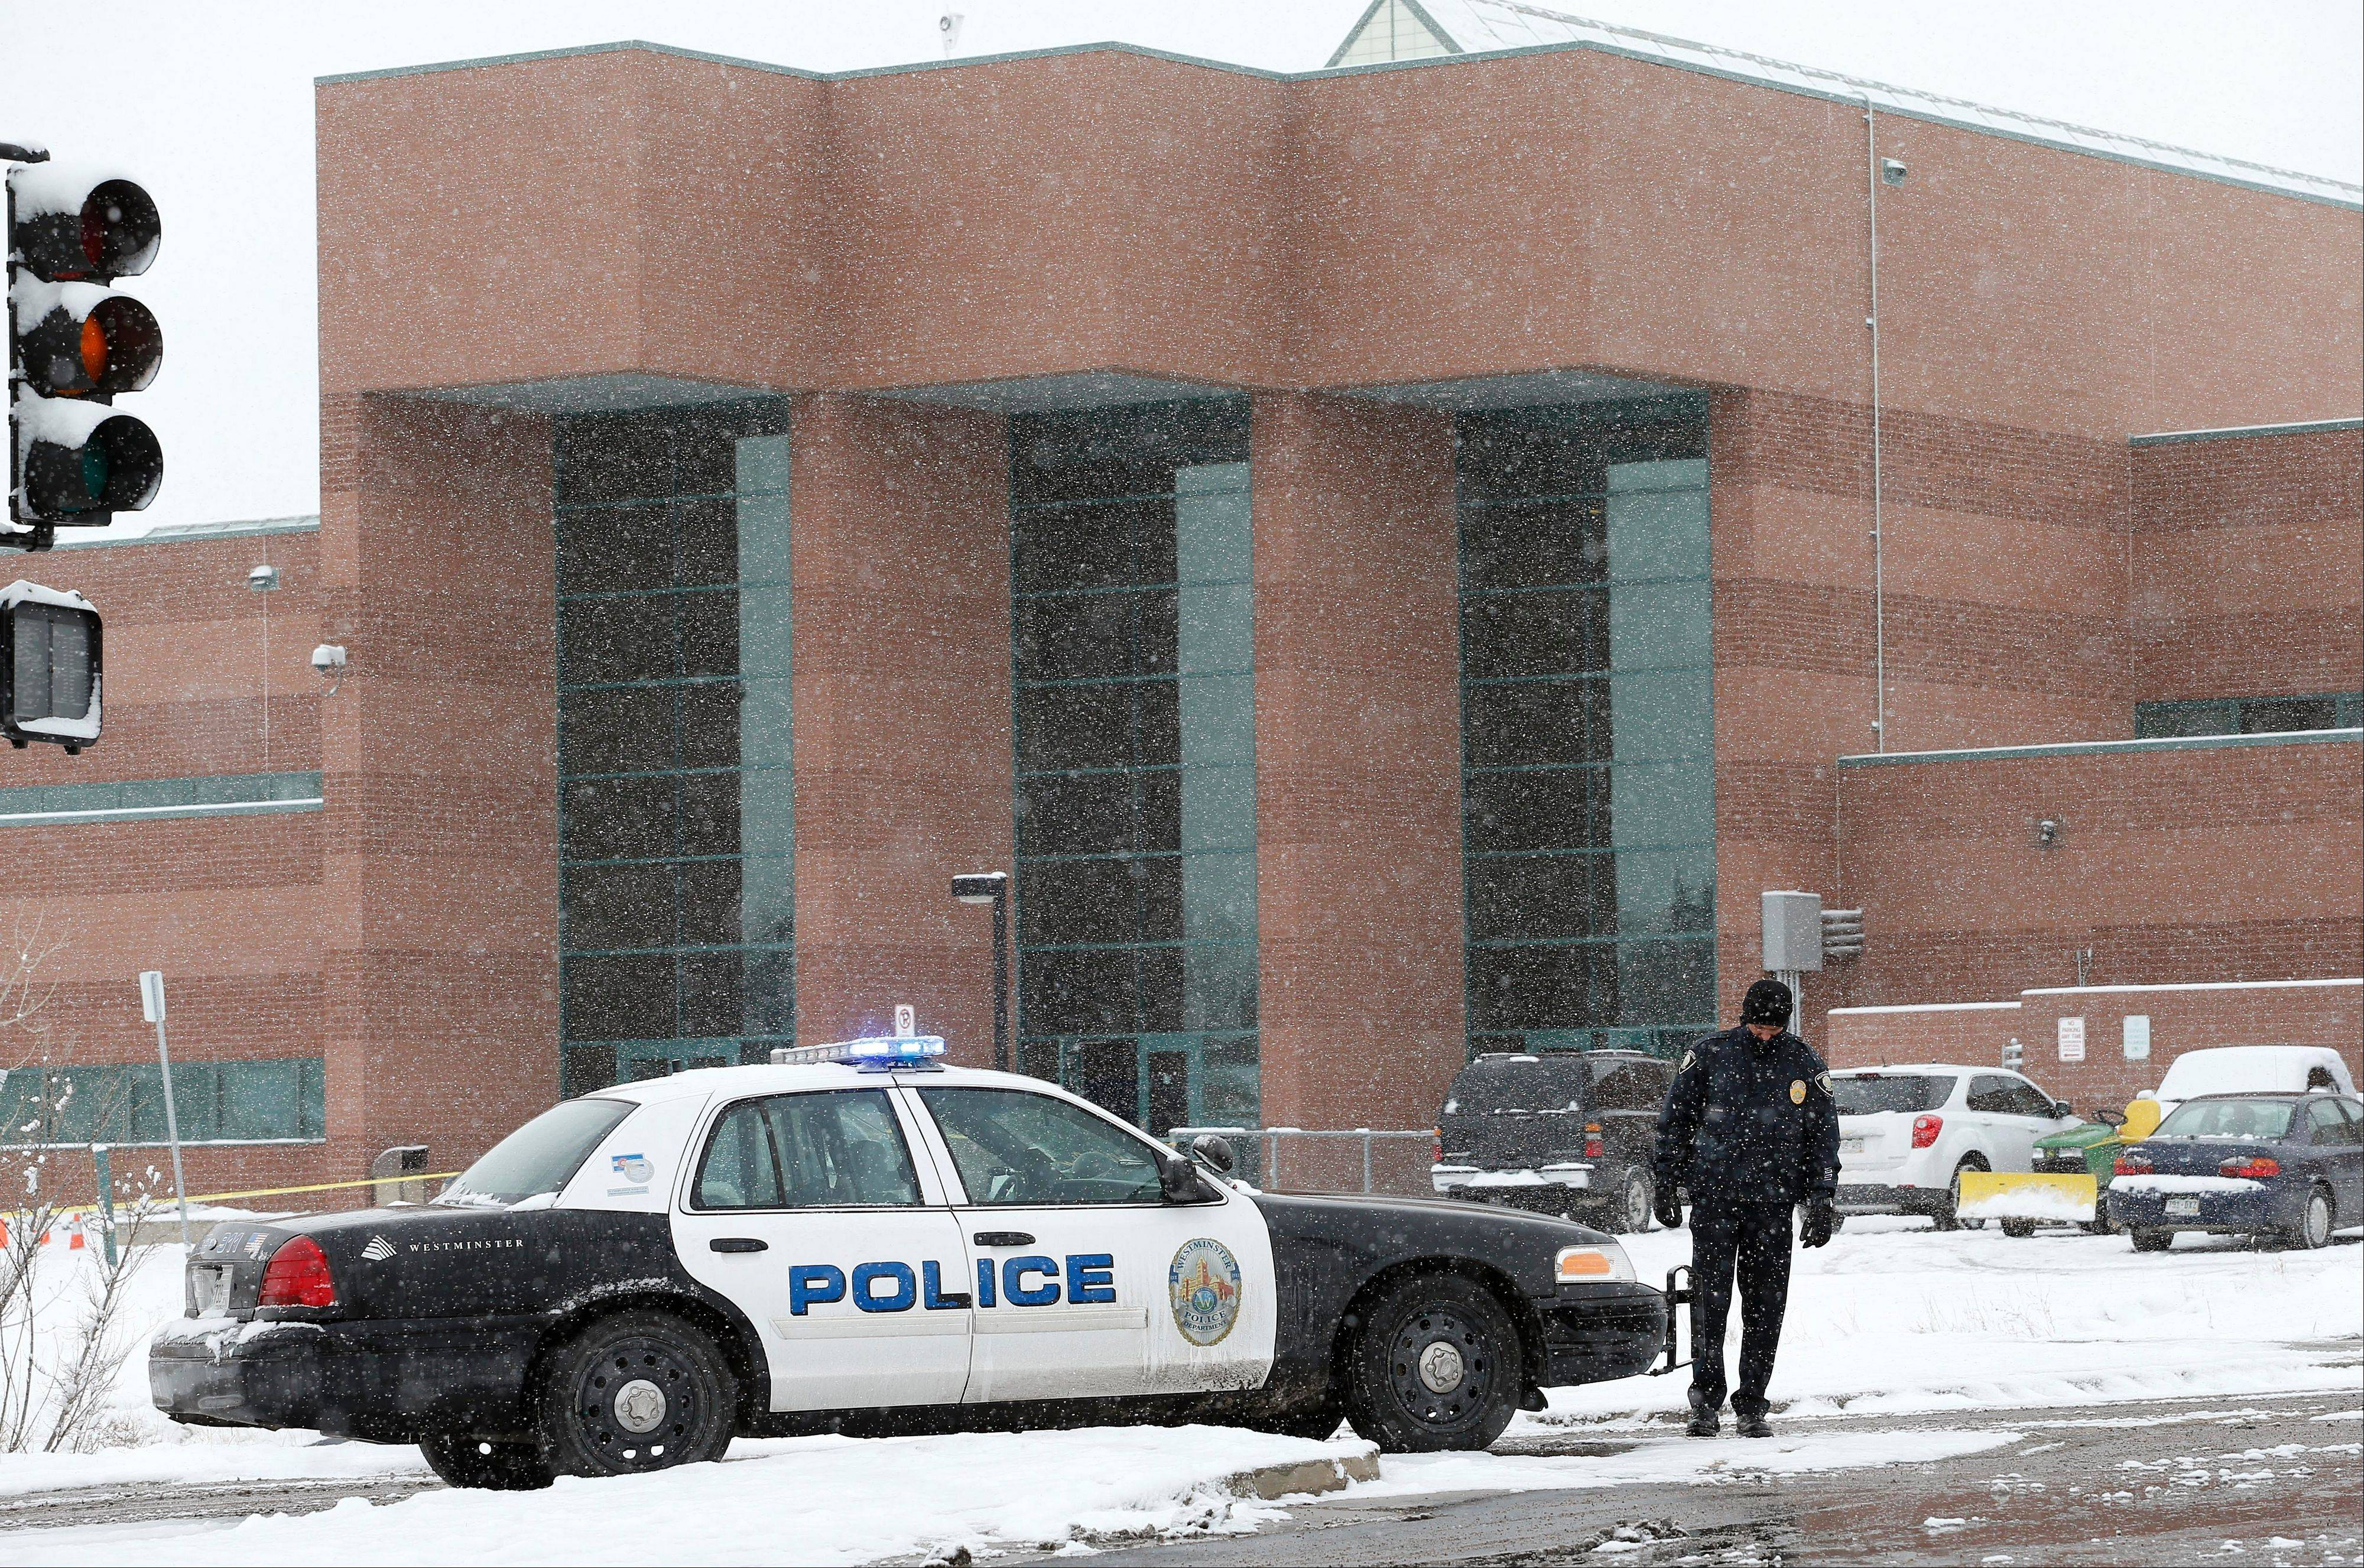 A police cruiser blocks the entrance to Standley Lake High School, where classes were canceled after an apparent suicide attempt by a student, in Westminster, Colo., Monday, Jan. 27, 2014. Police say a 16-year-old boy was critically injured after setting himself on fire at the suburban Denver high school.